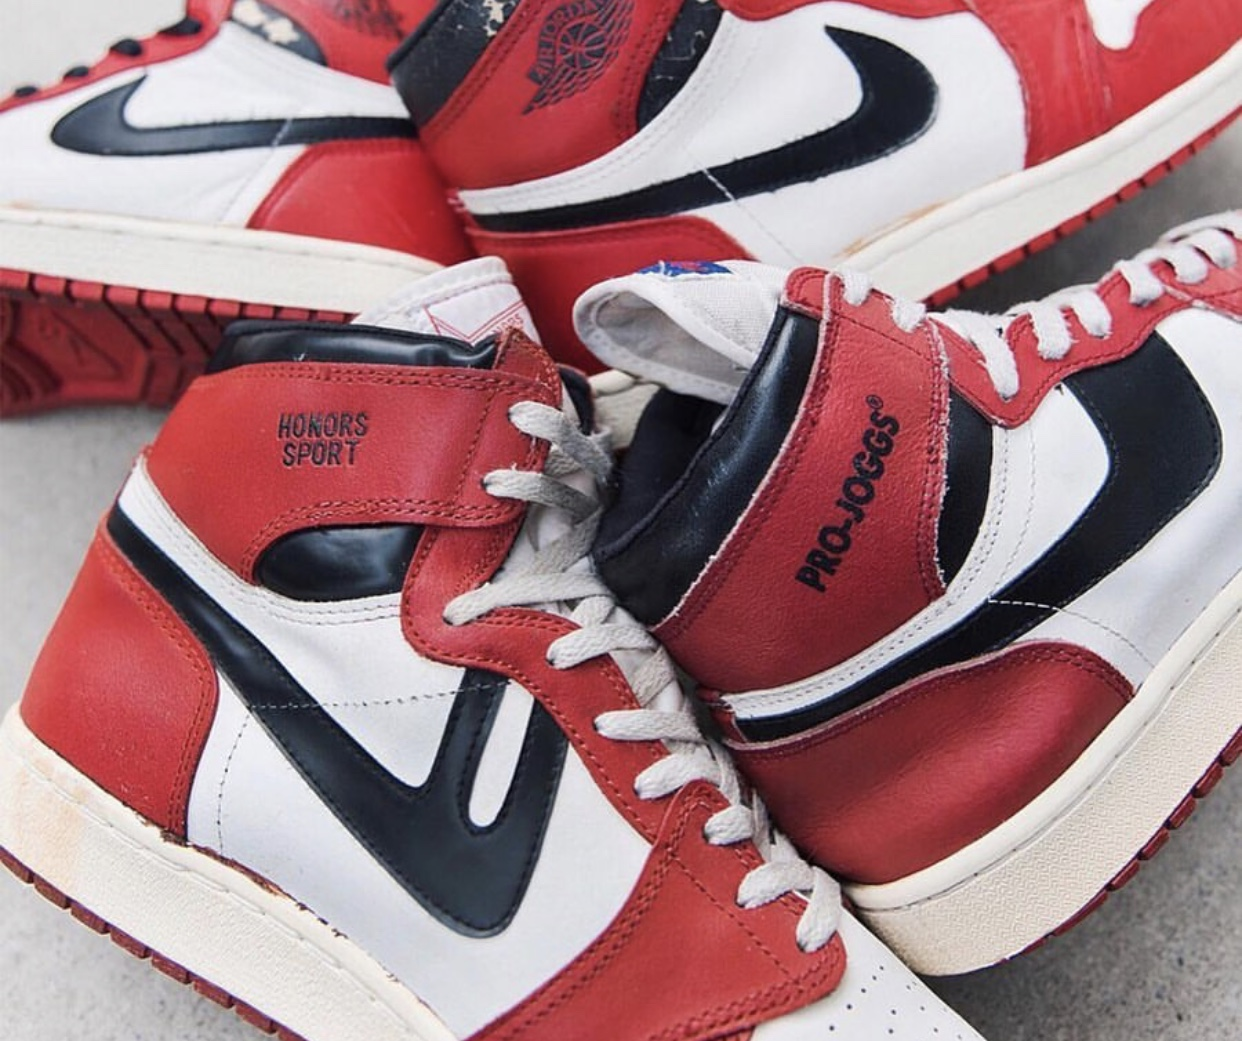 JORDAN 1s and a host of counterfeits.